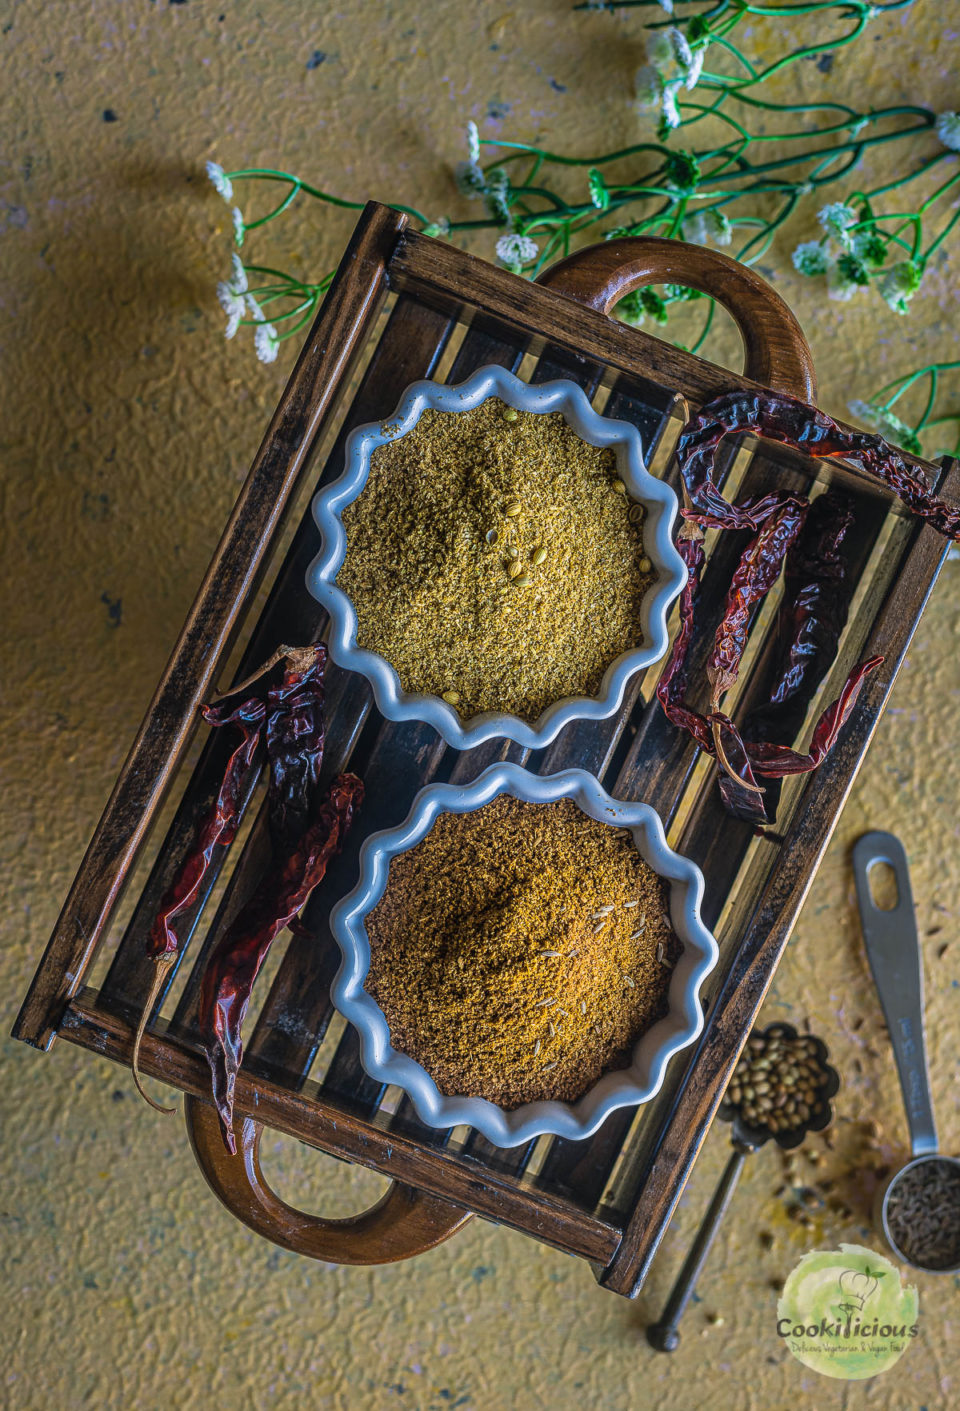 one bowl filled with cilantro powder and one bowl filled with ground cumin placed in a wooden tray